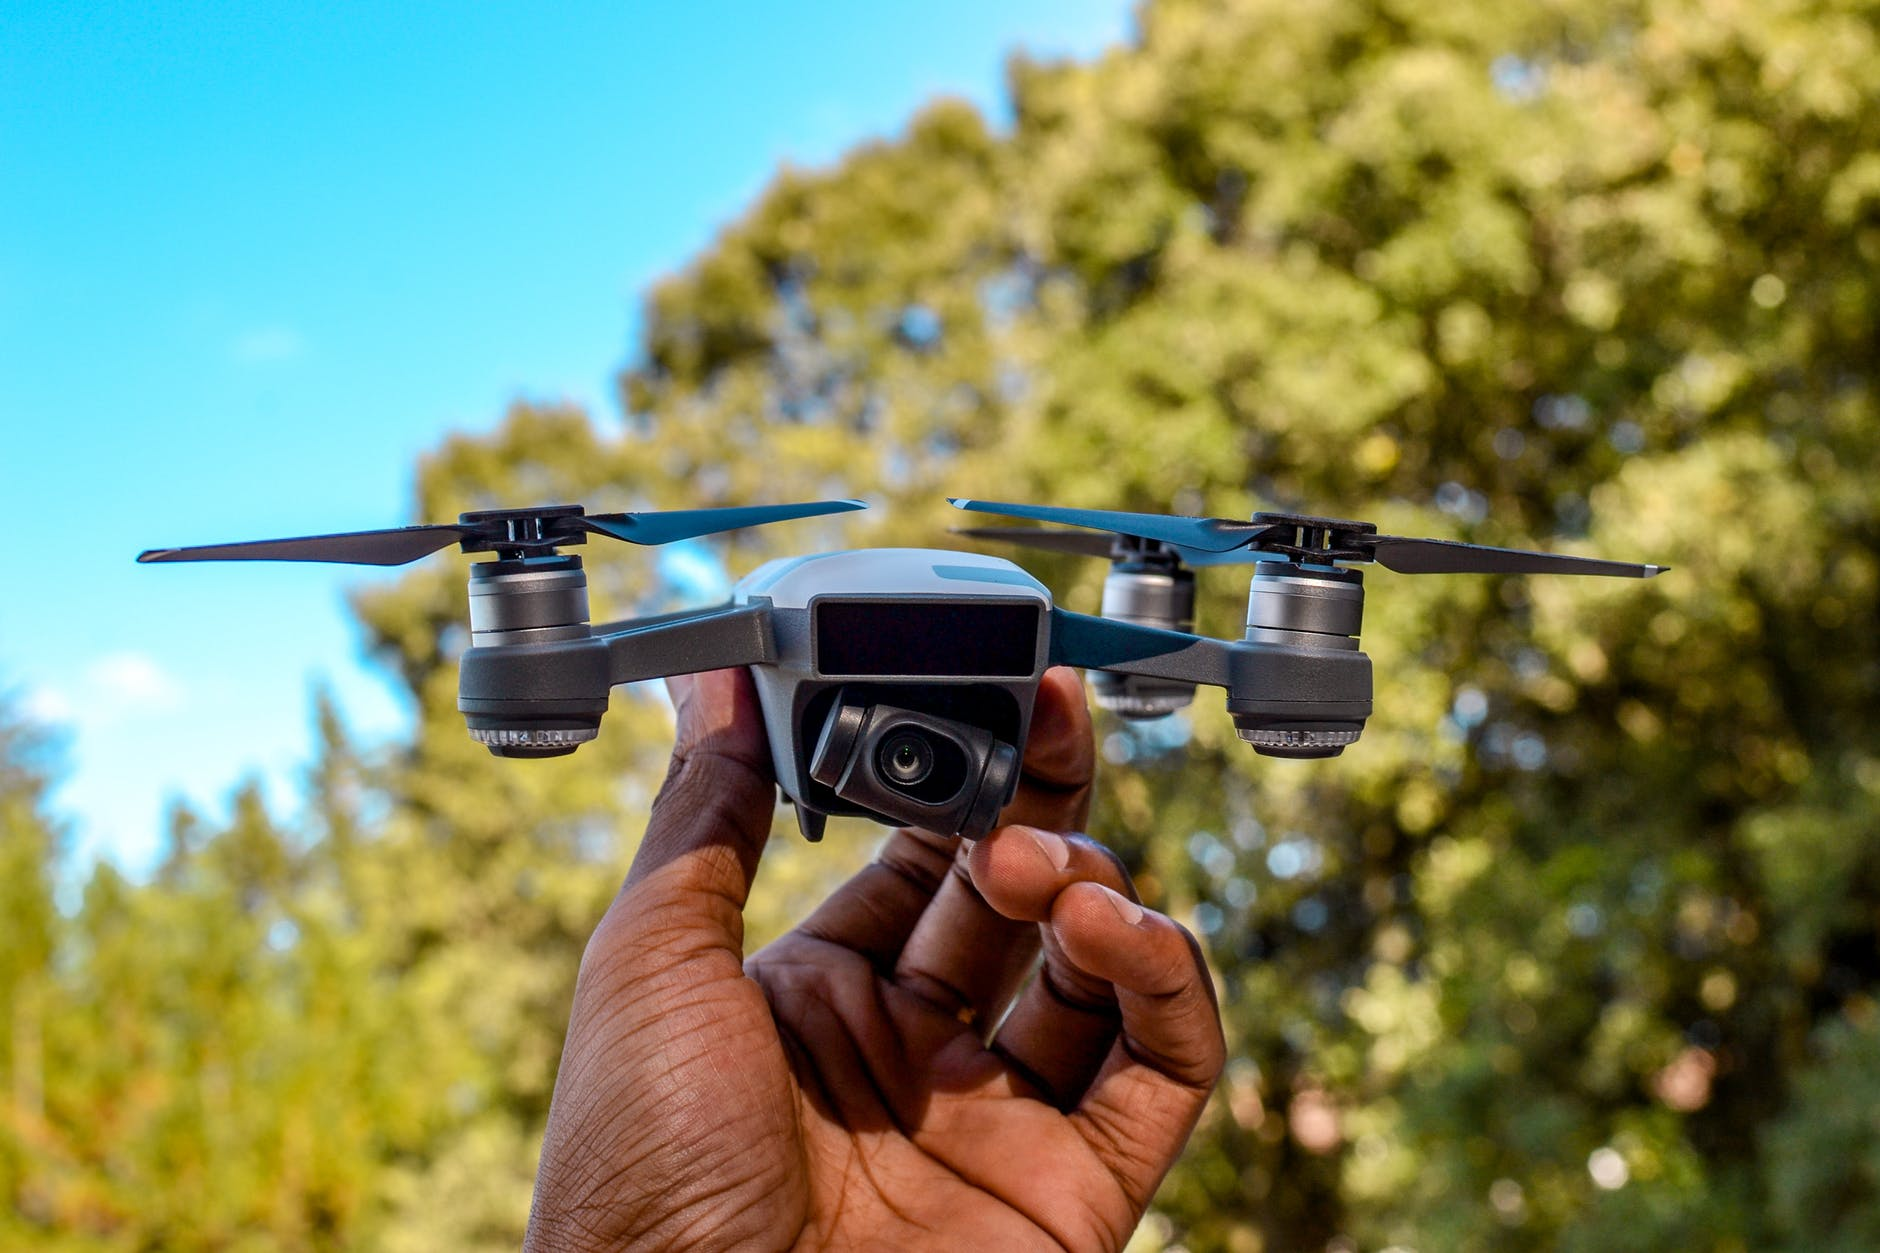 How Drone Technology Can Help with Your Business